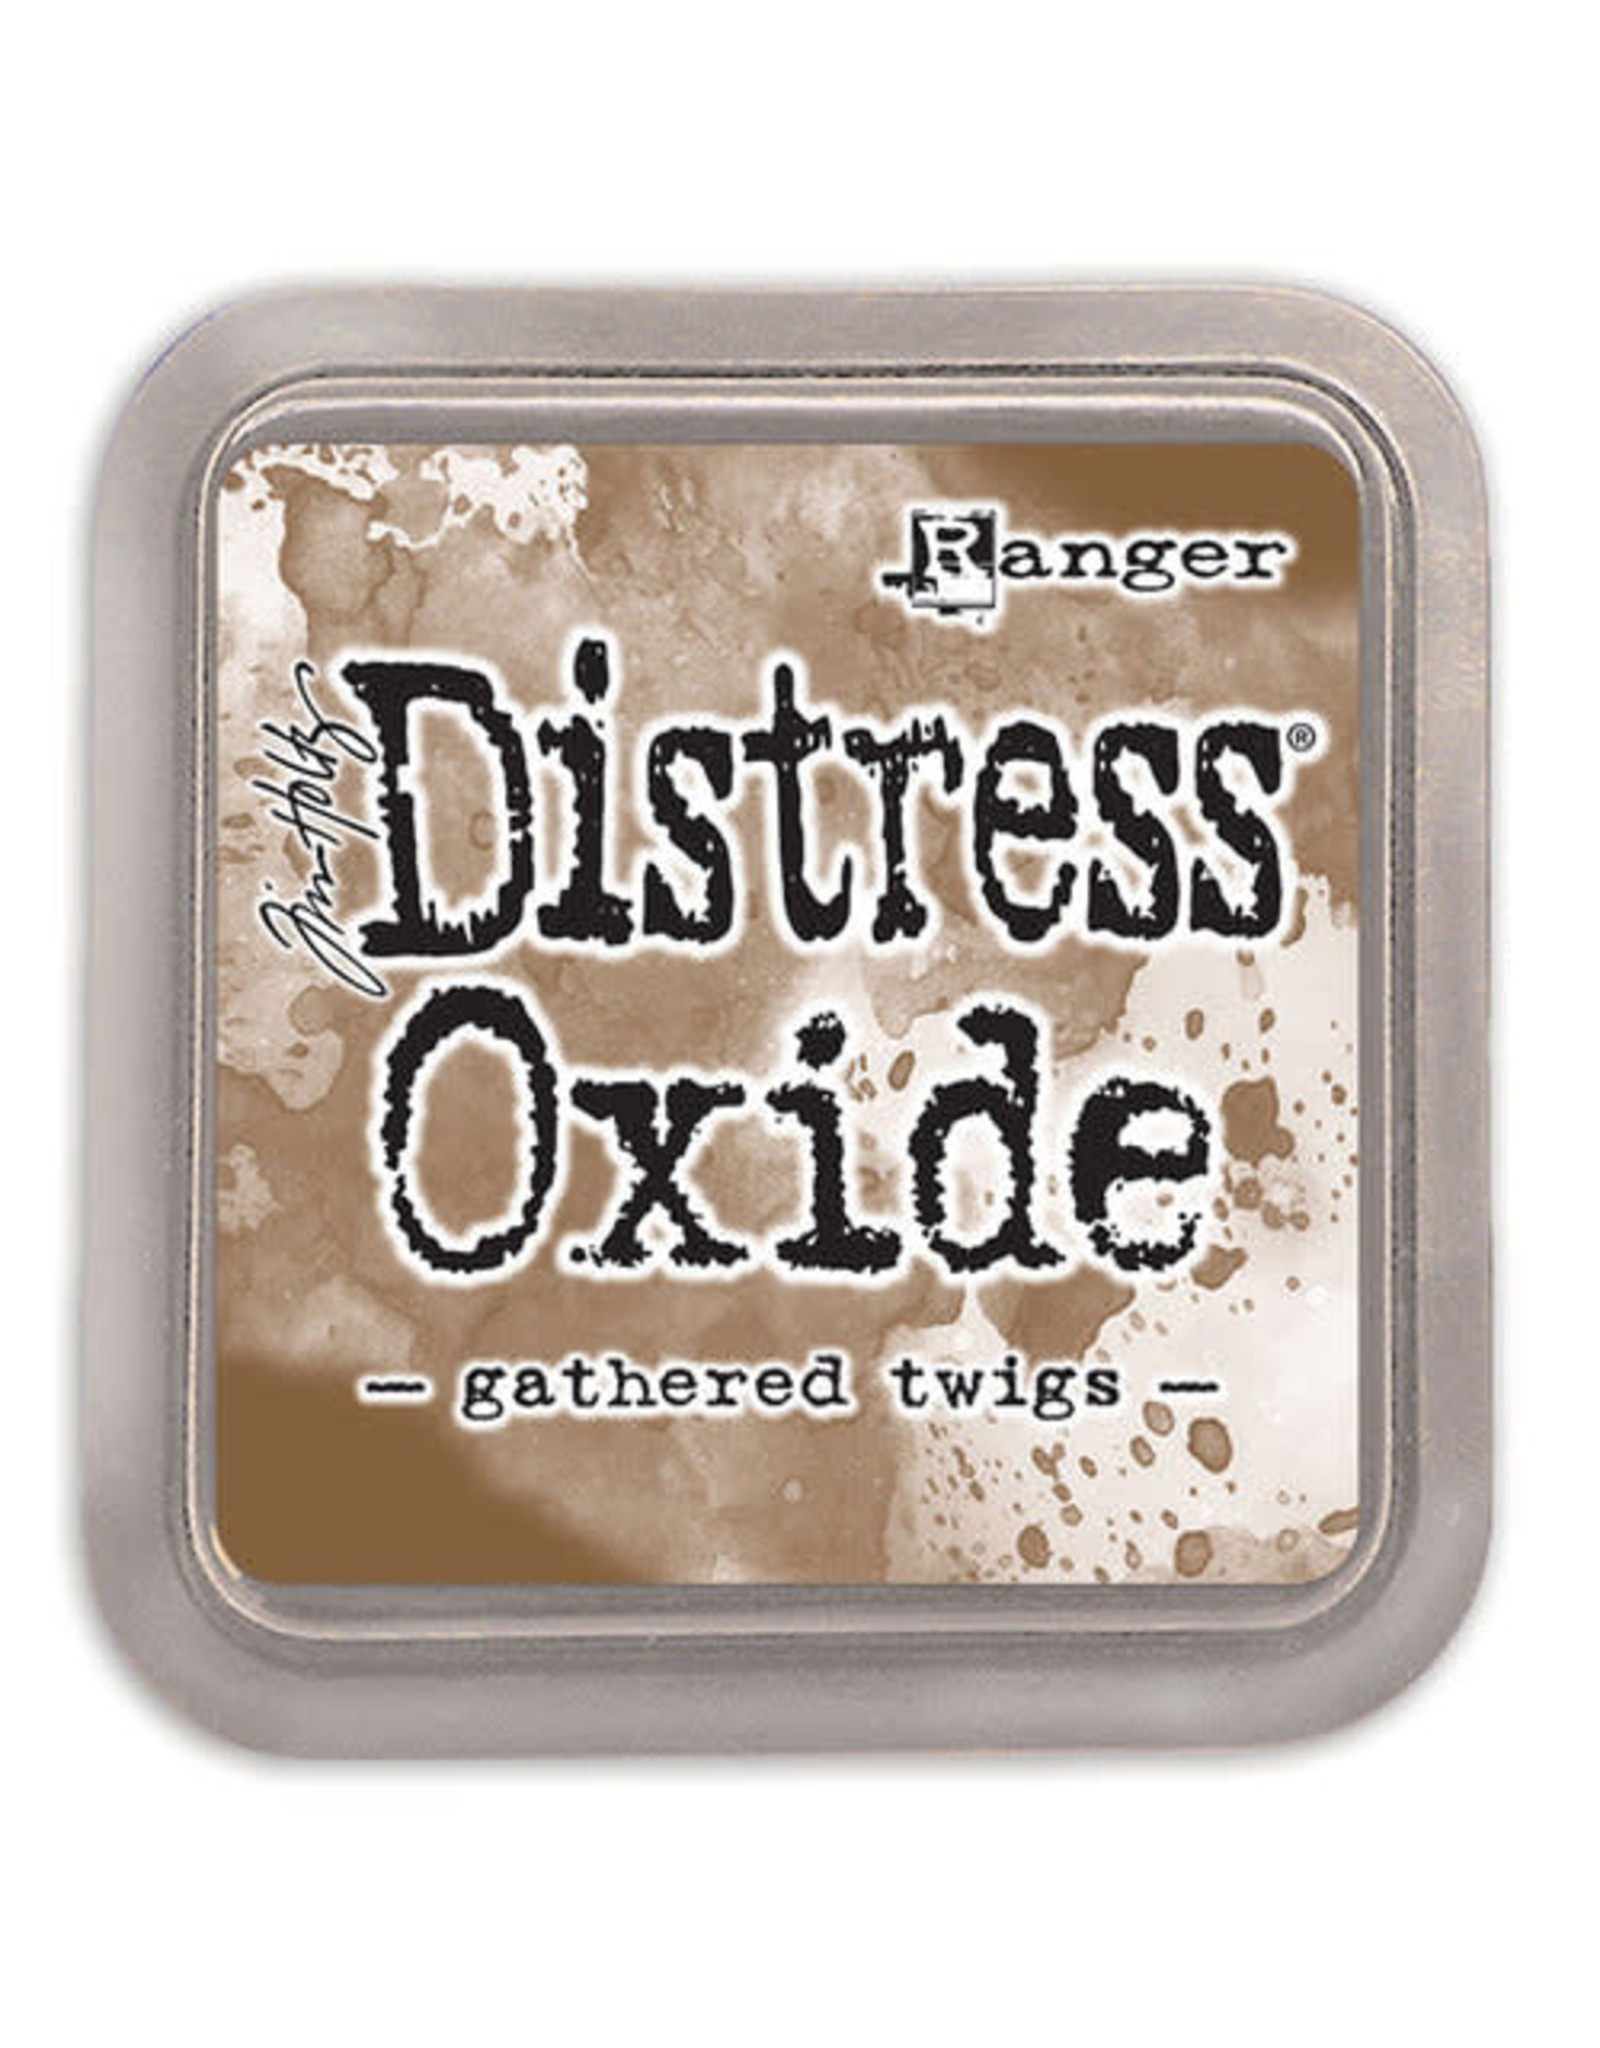 Ranger Distress Oxide -Gathered Twigs